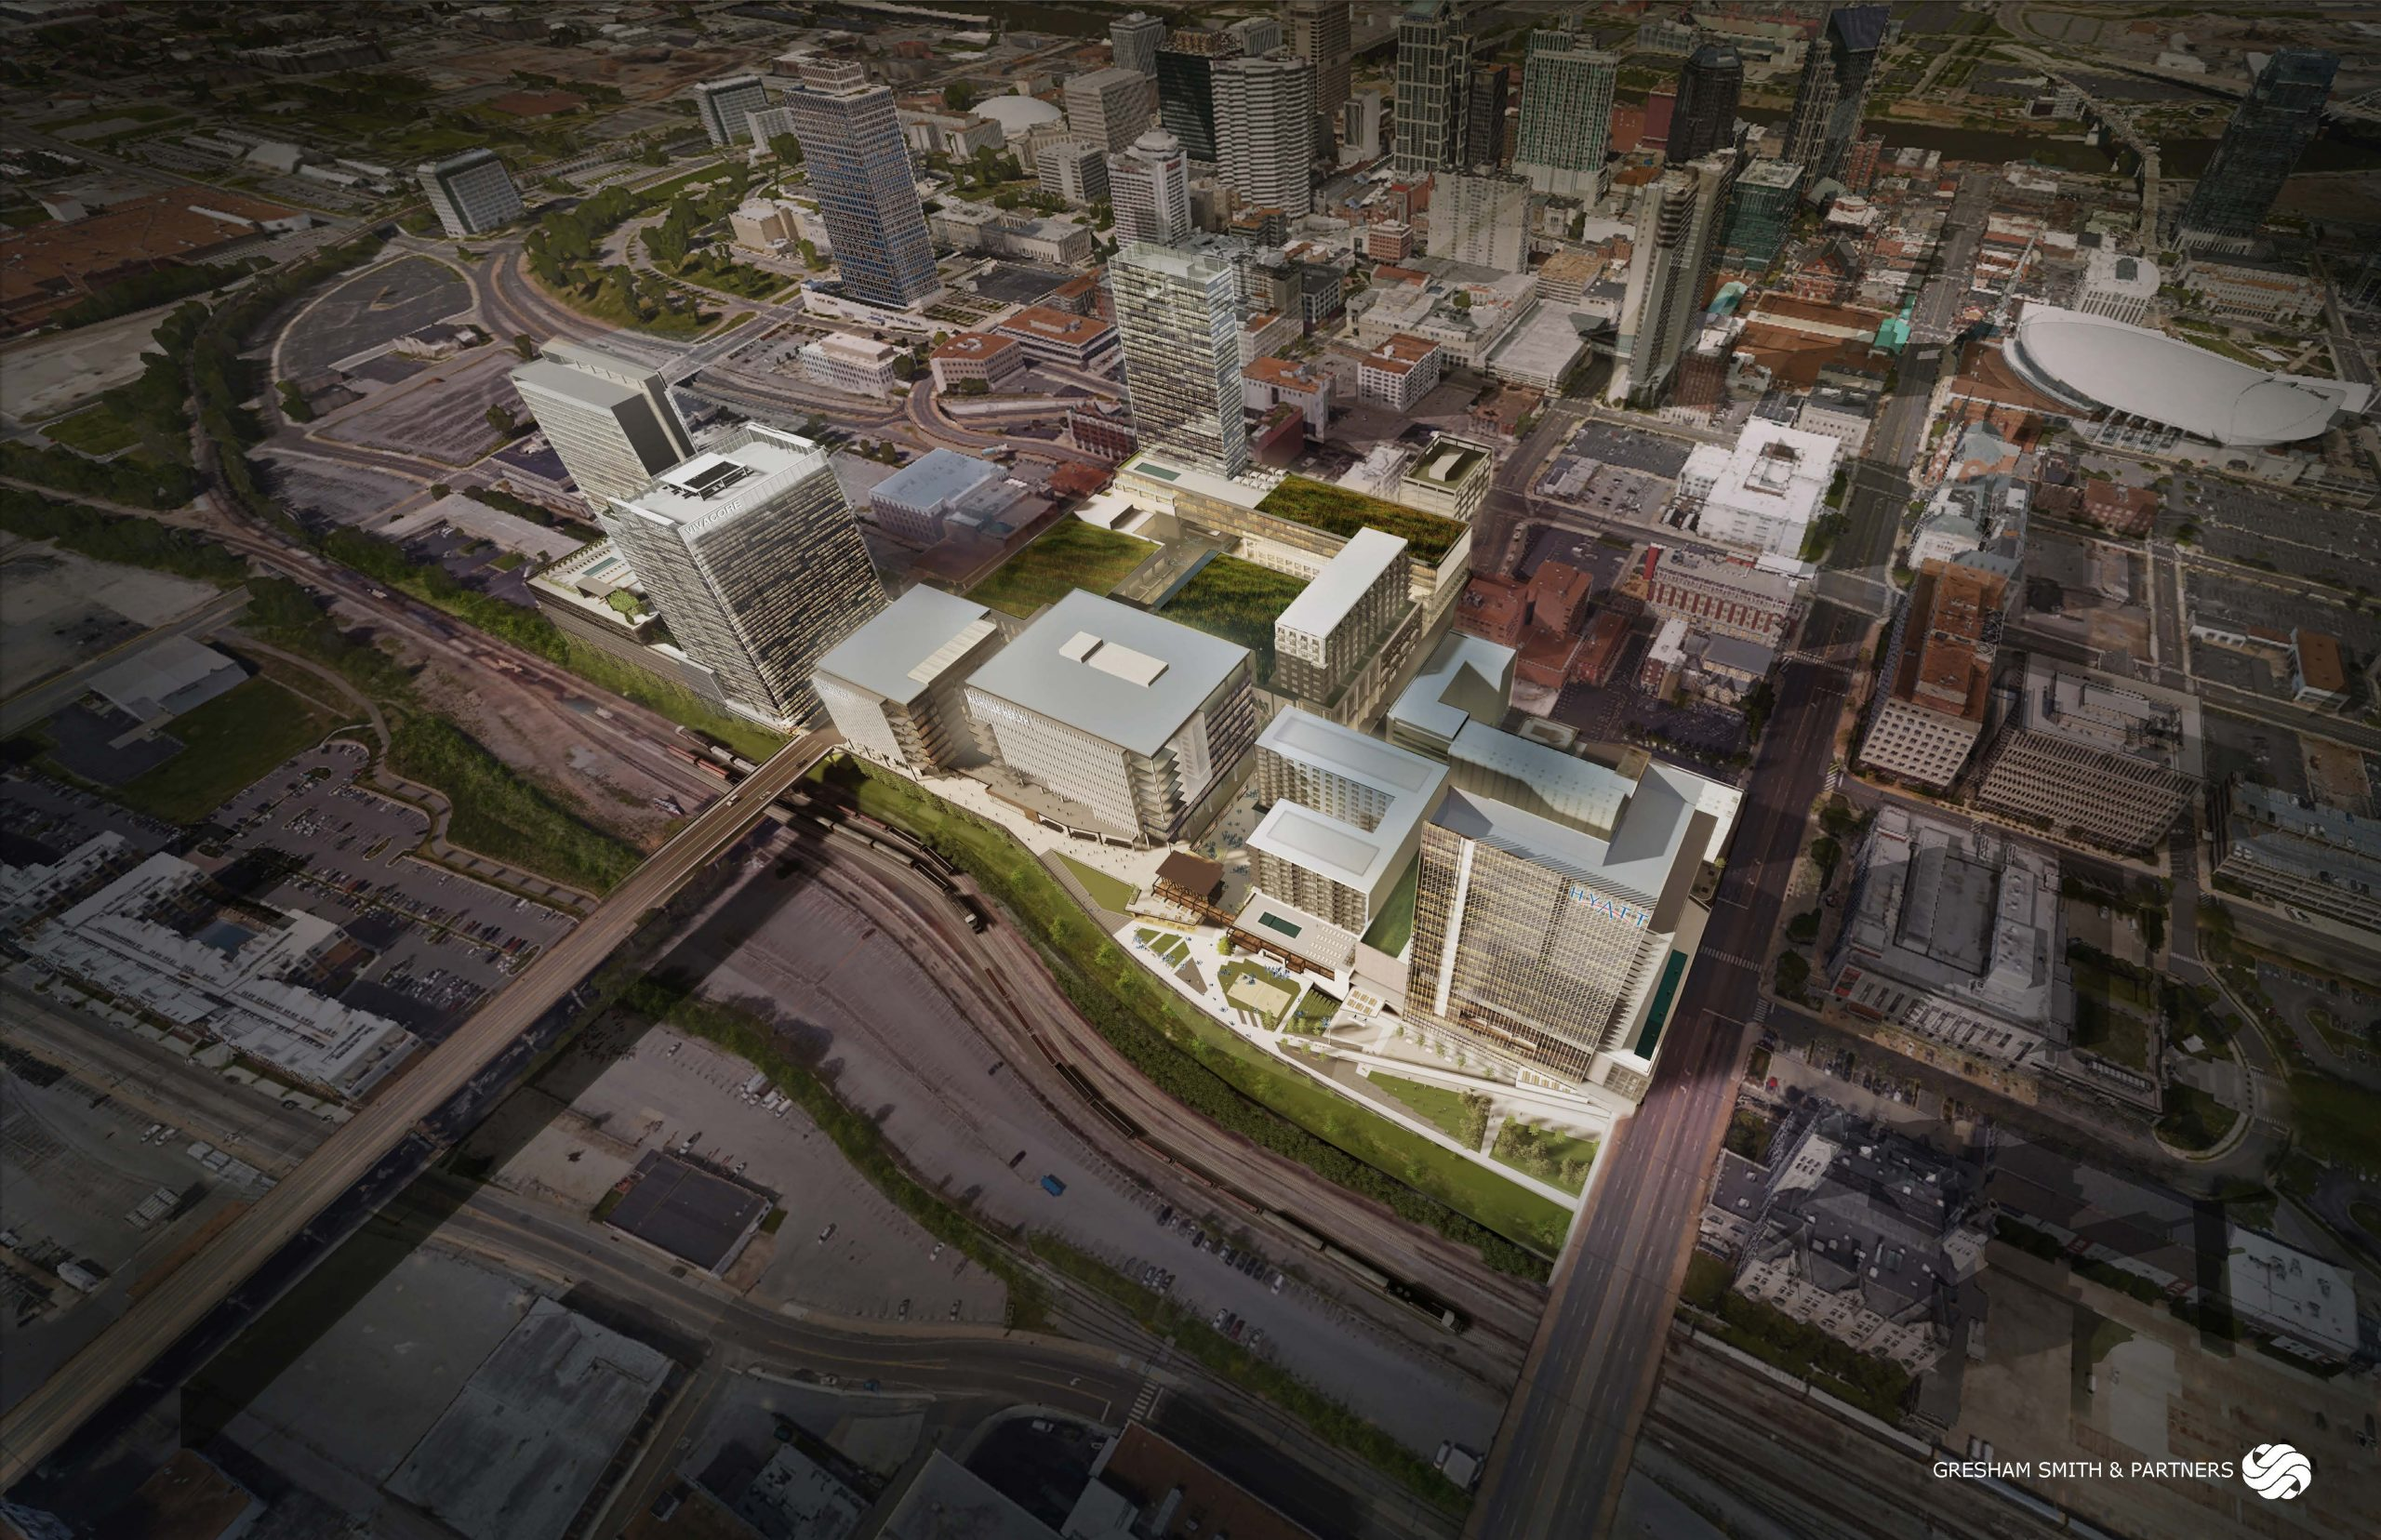 New Music Venue and Entertainment District at Nashville Yards To Be Built With AEG